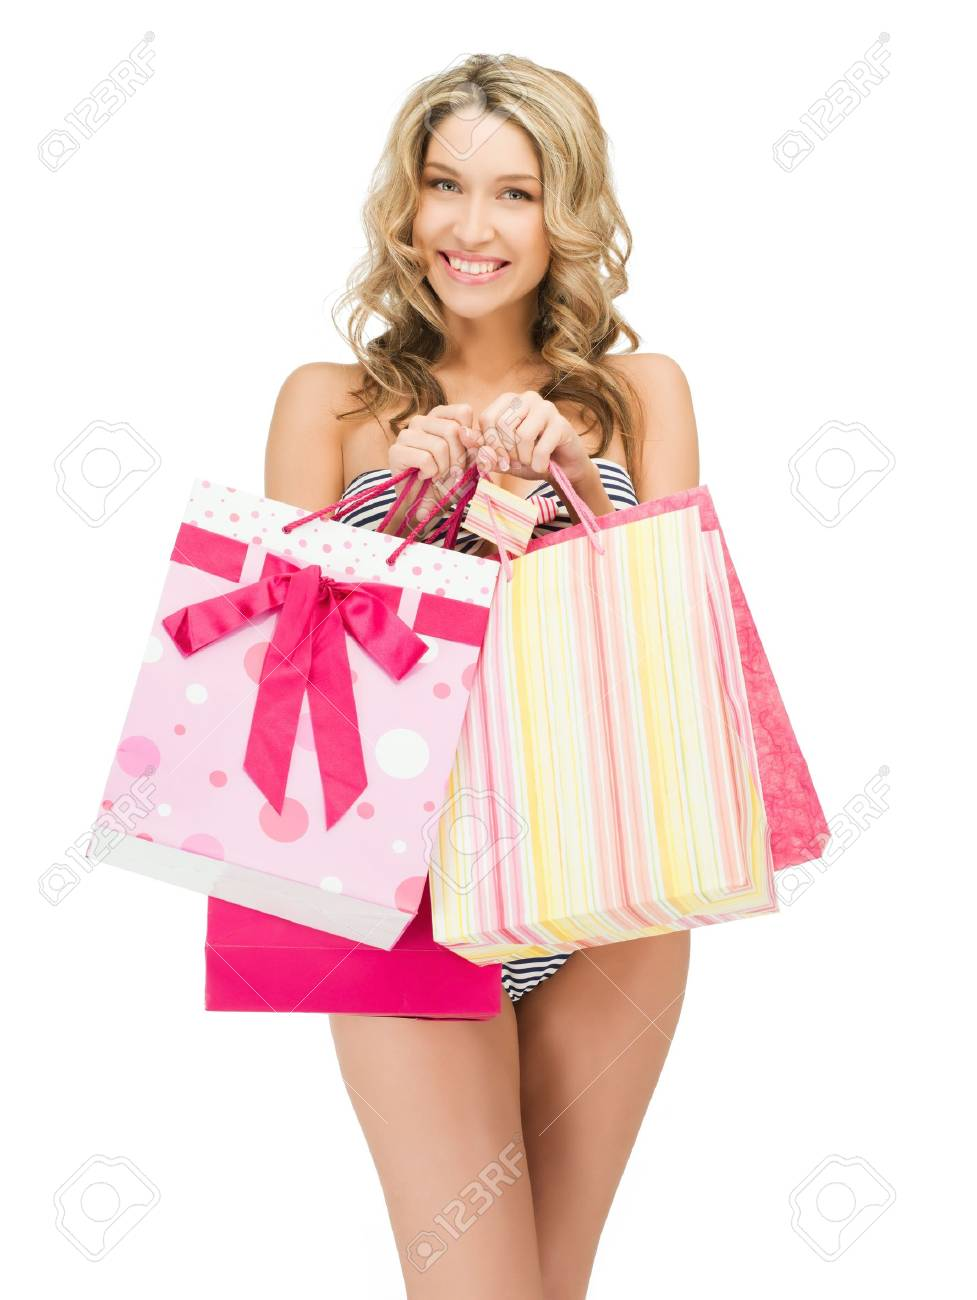 picture of seductive woman in bikini with shopping bags Stock Photo - 12971346